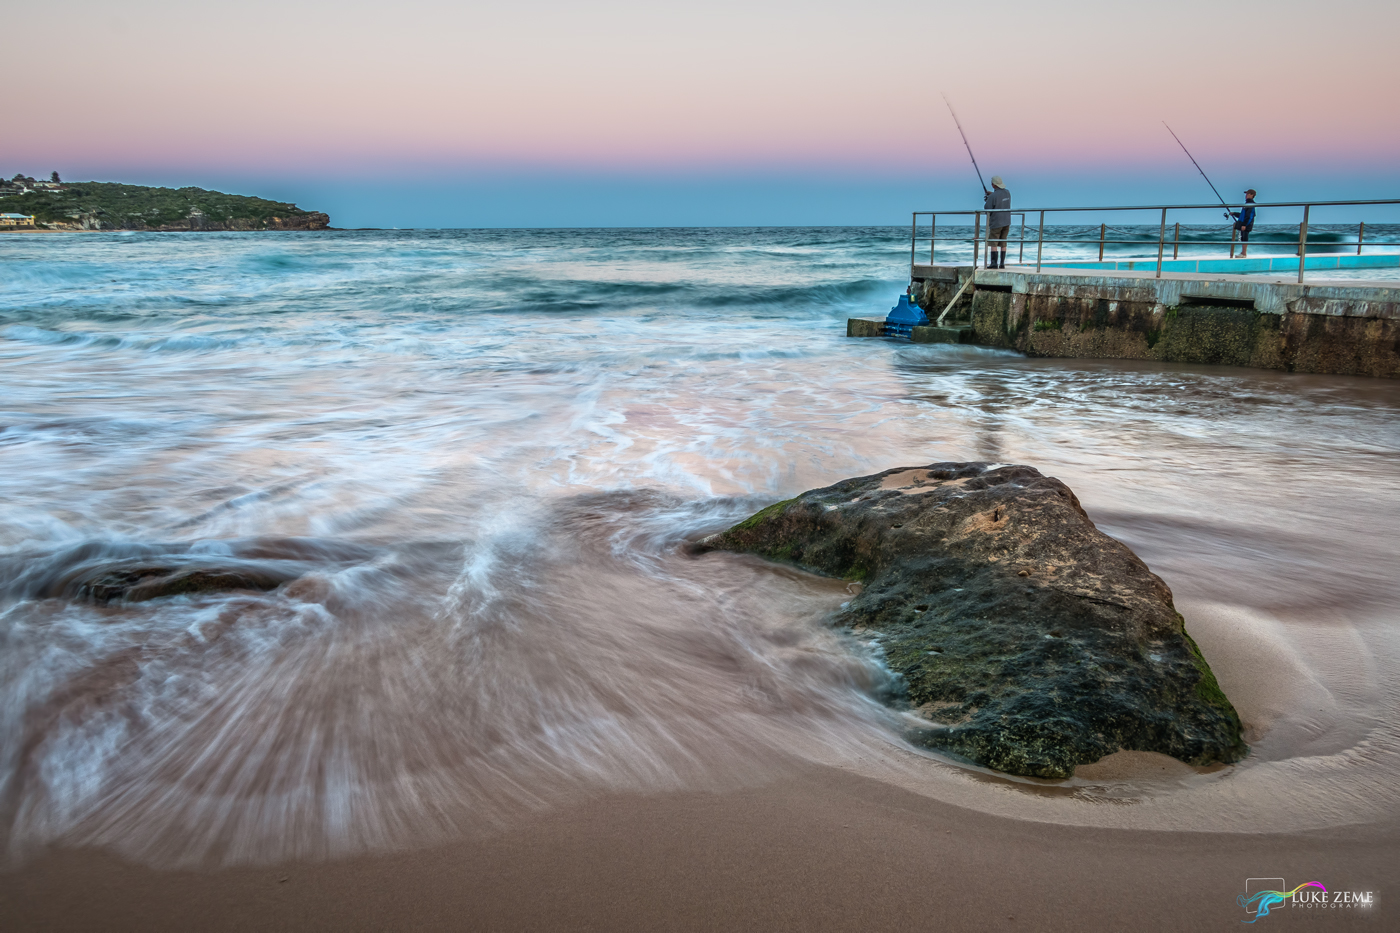 Luke Zeme Photography Fishing-the-great-expanse PHOTO OF THE DAY- Seascapes from Curl Curl Beach, Northern Beaches Sydney